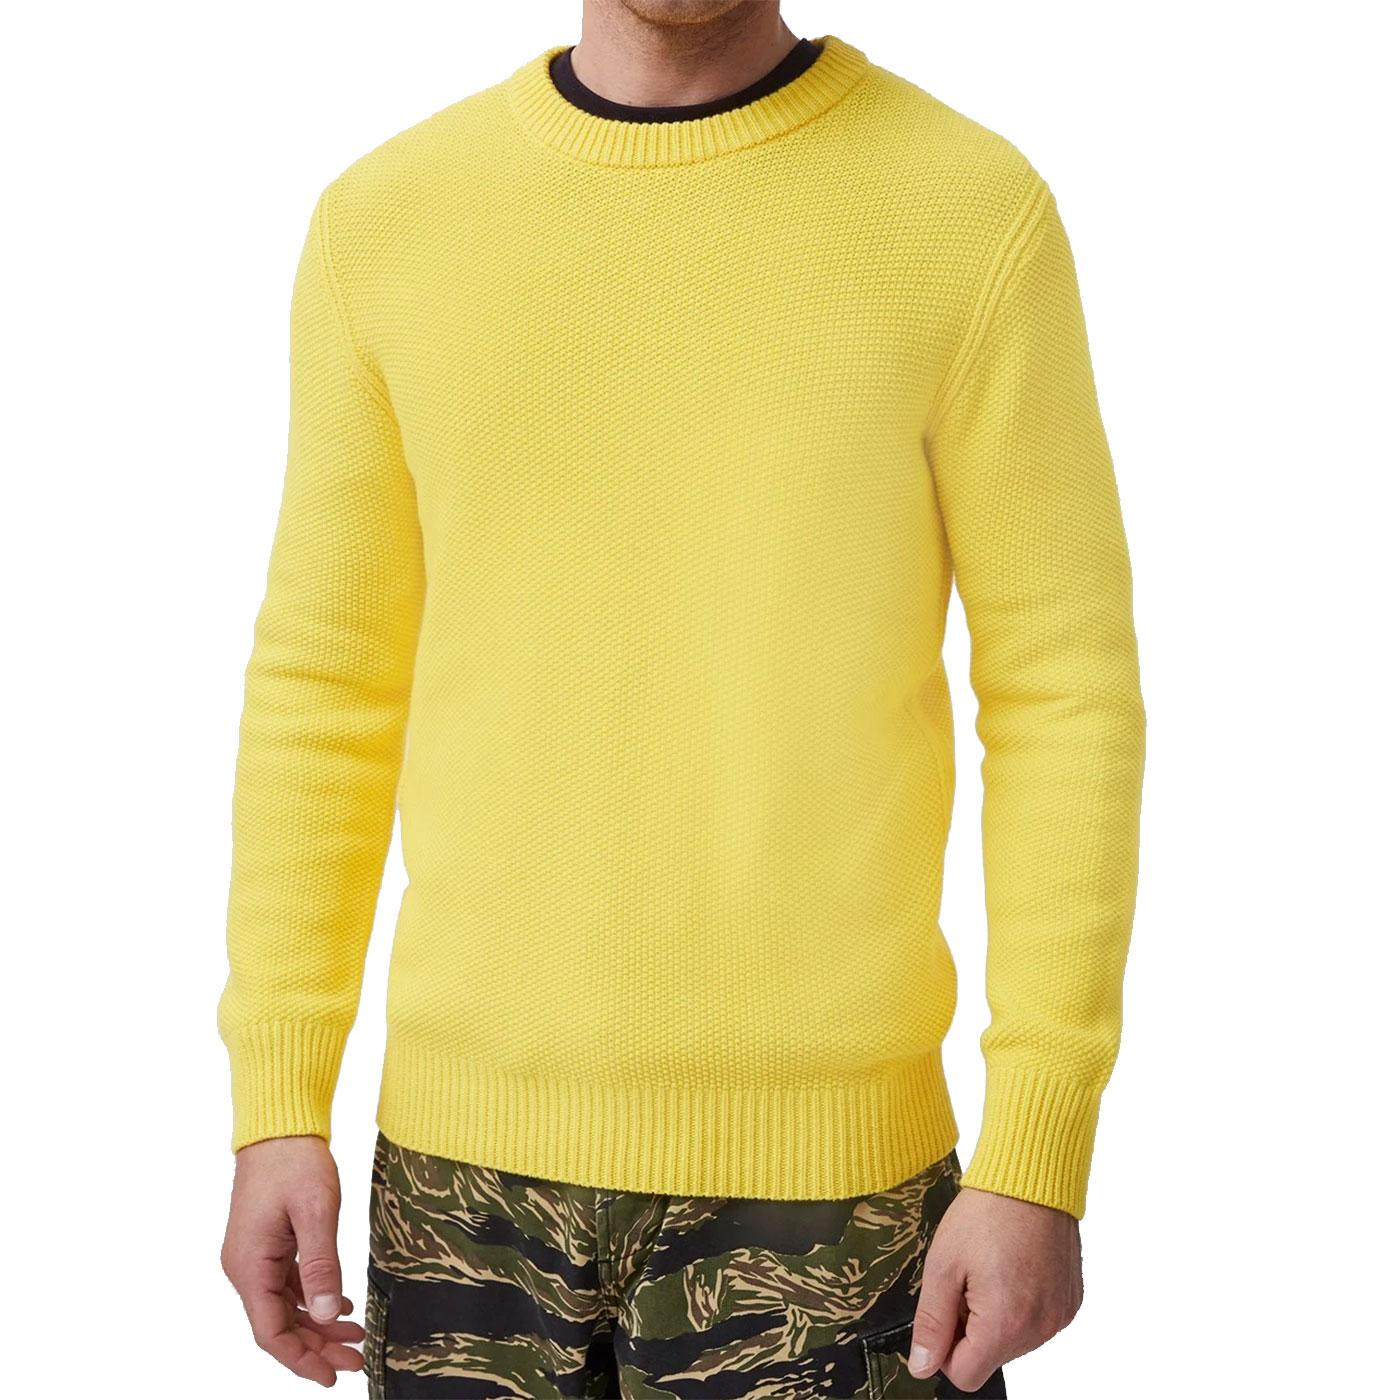 FRENCH CONNECTION Moss Stitch Chunky Knit Jumper